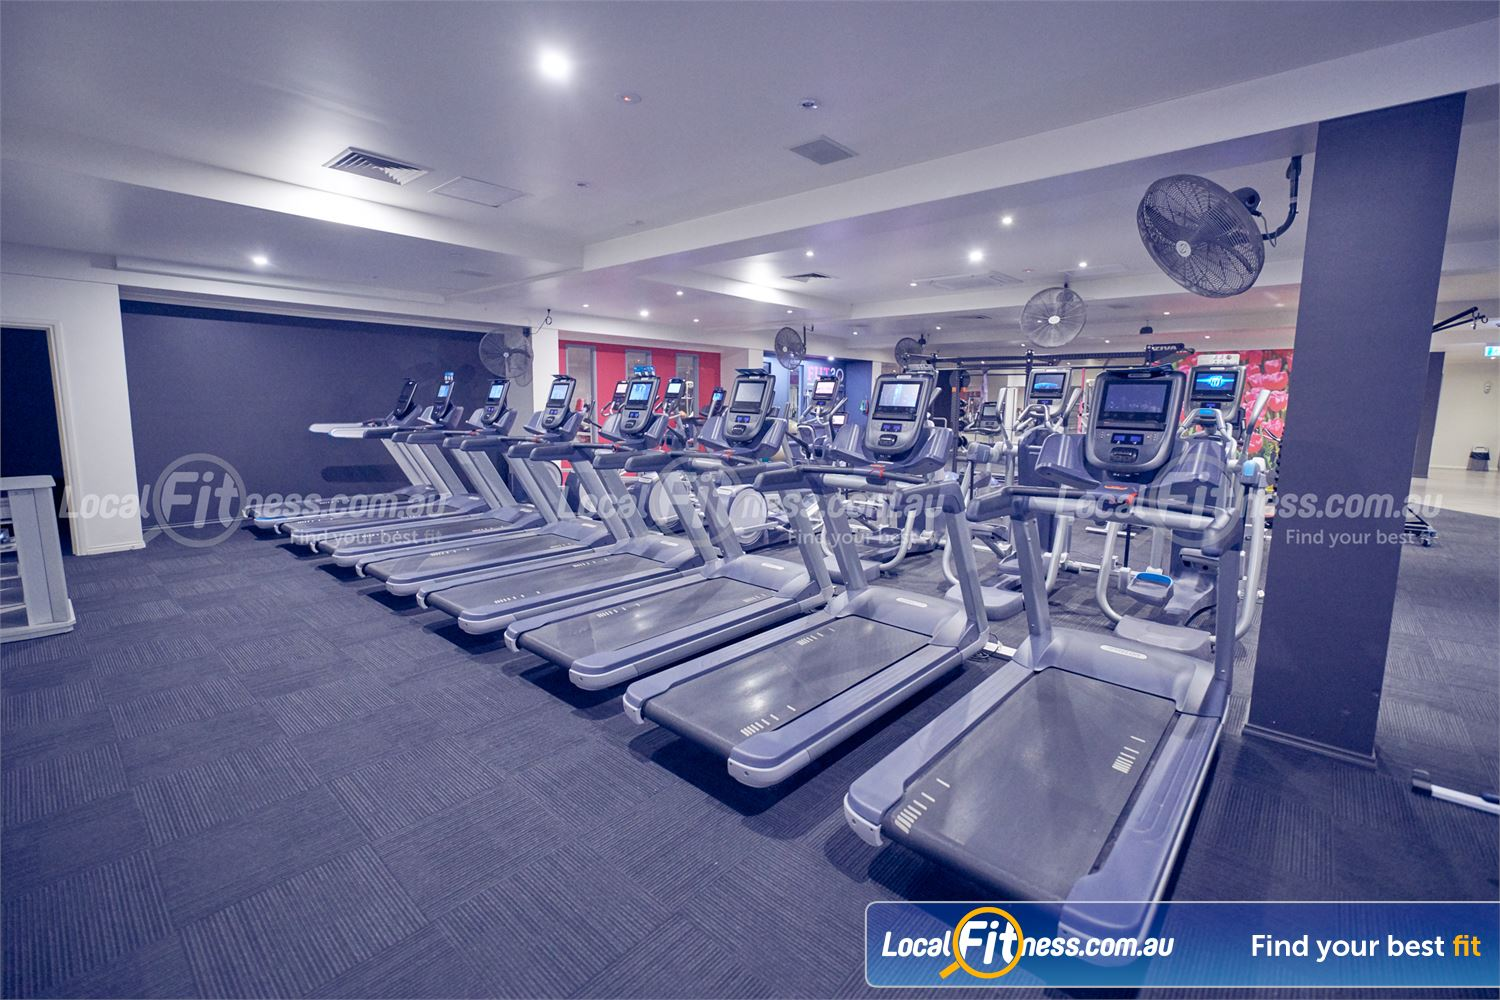 Fernwood Fitness Bulleen The state of the art cardio area in our Bulleen gym.